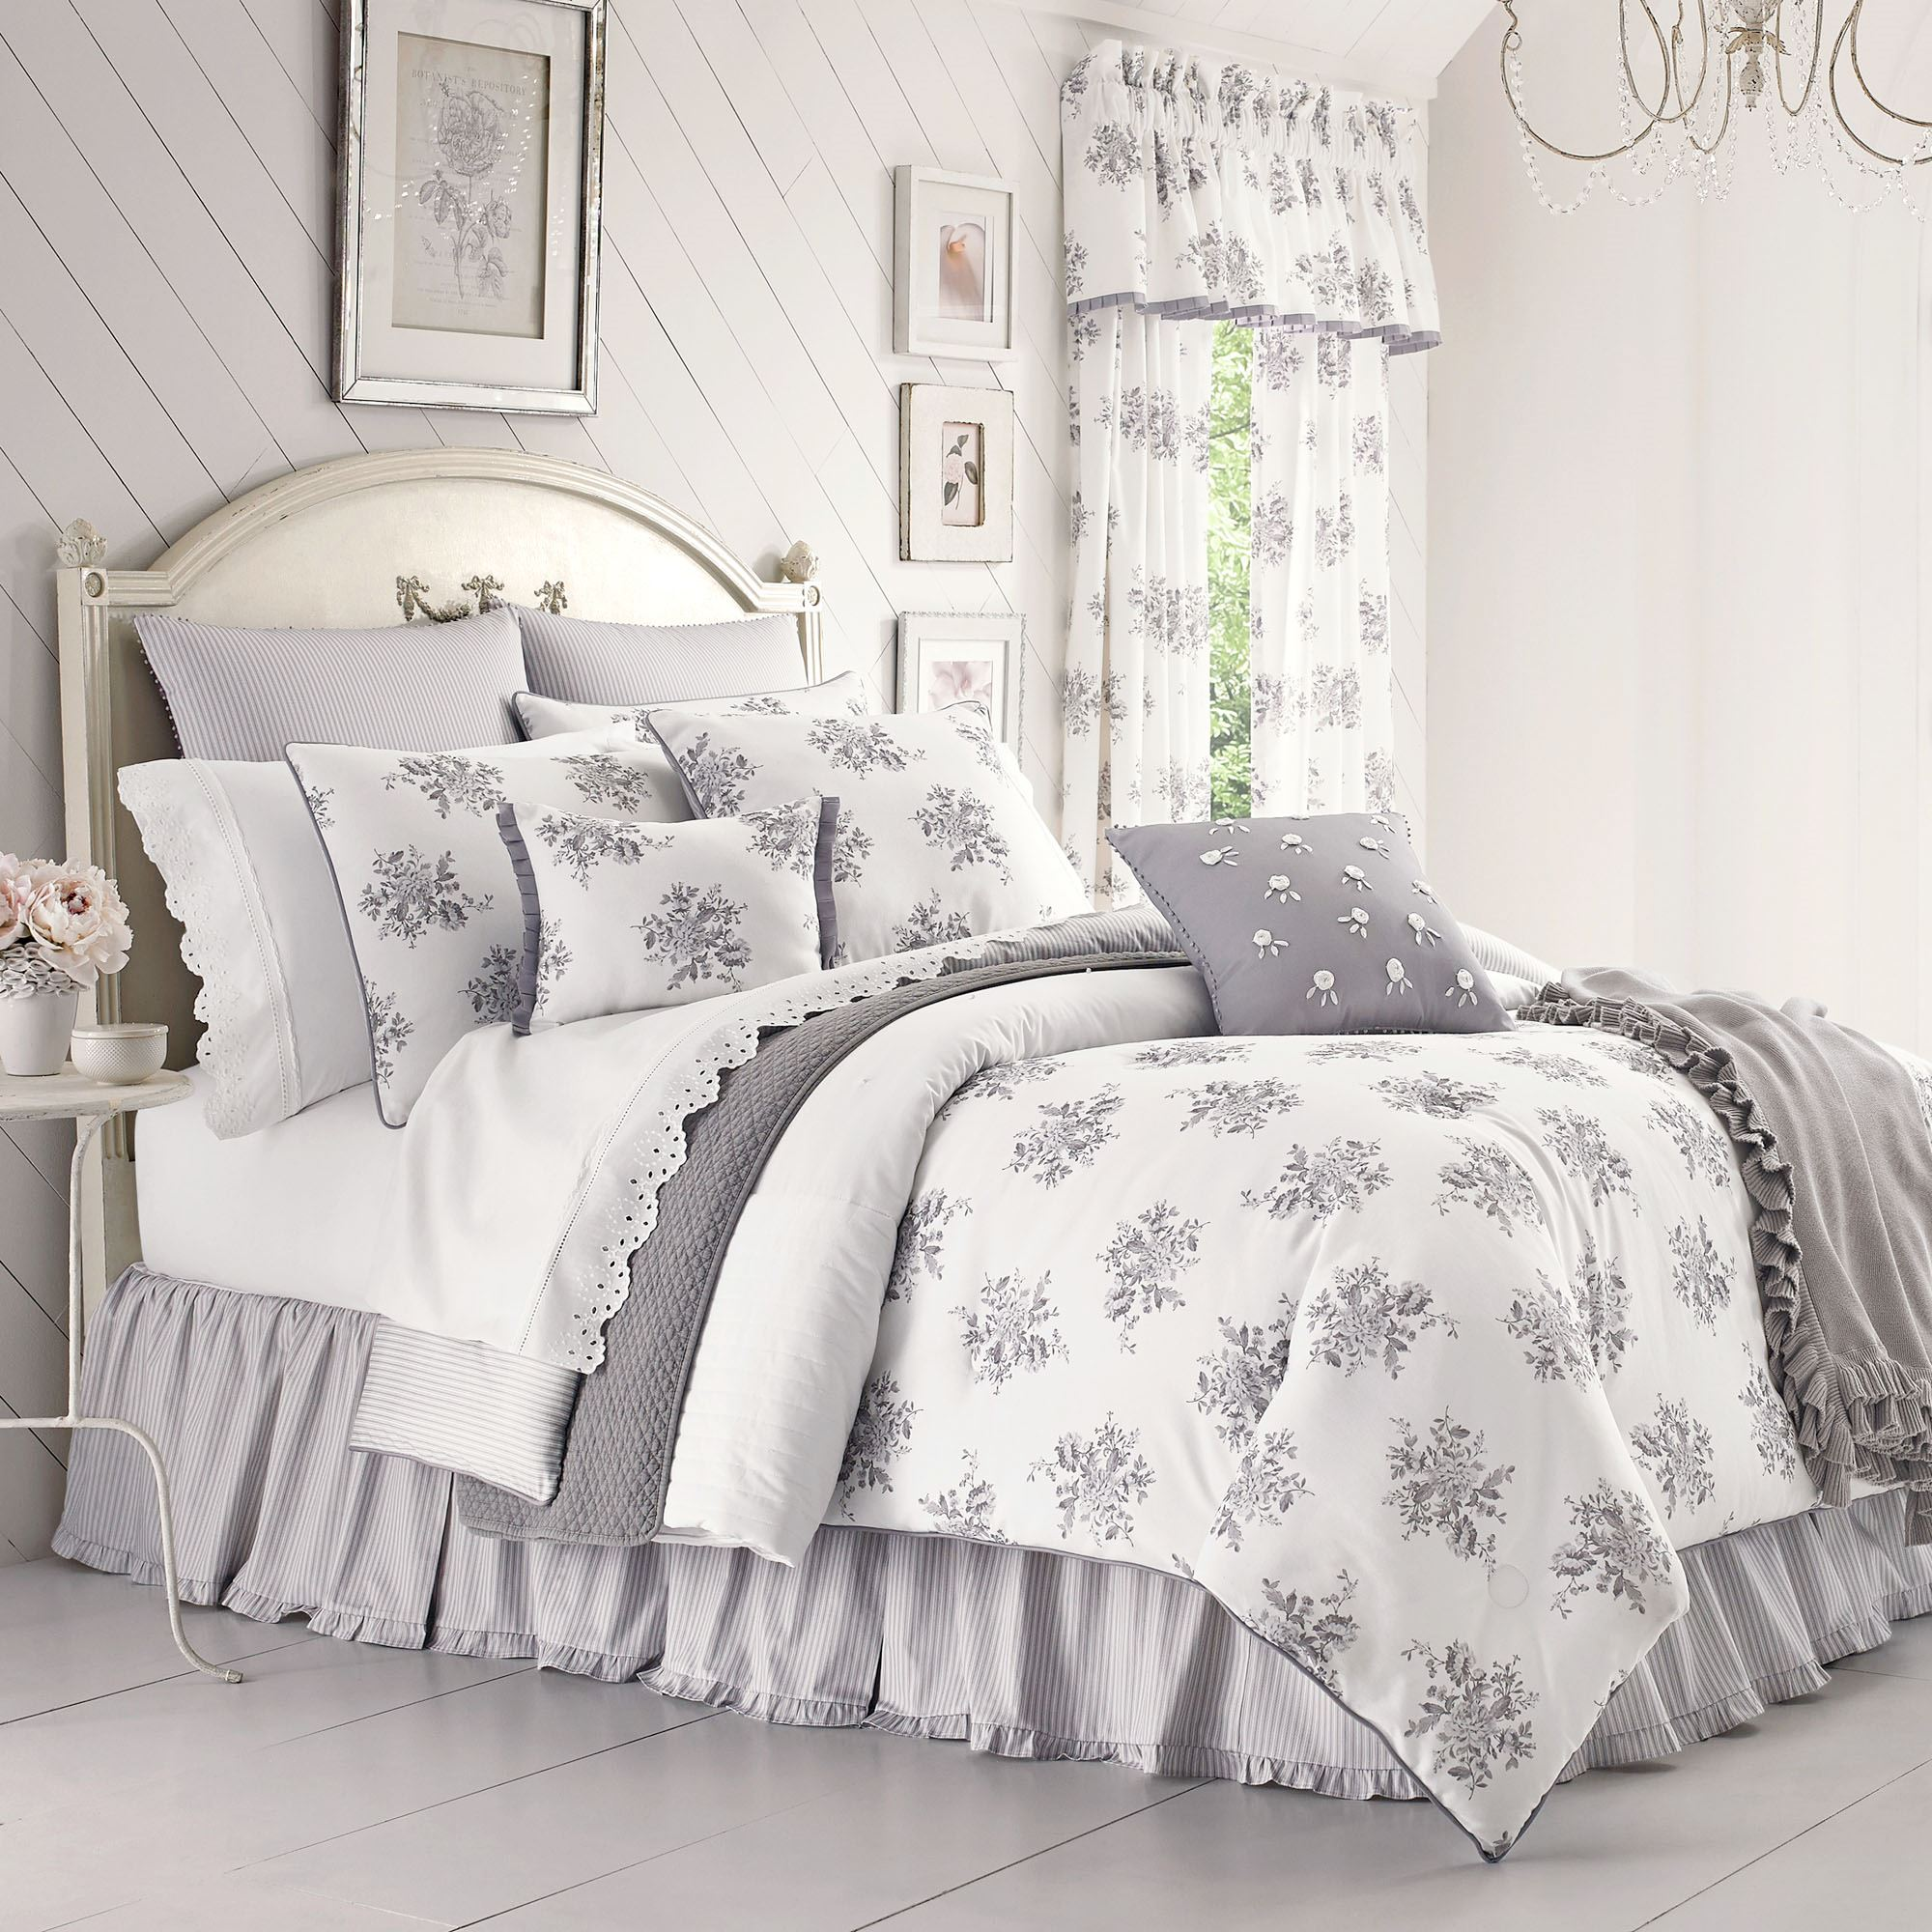 bedding girls floral clearance sale plum comforters with comforter vintage ease king embroidered teen for style set ihoxl